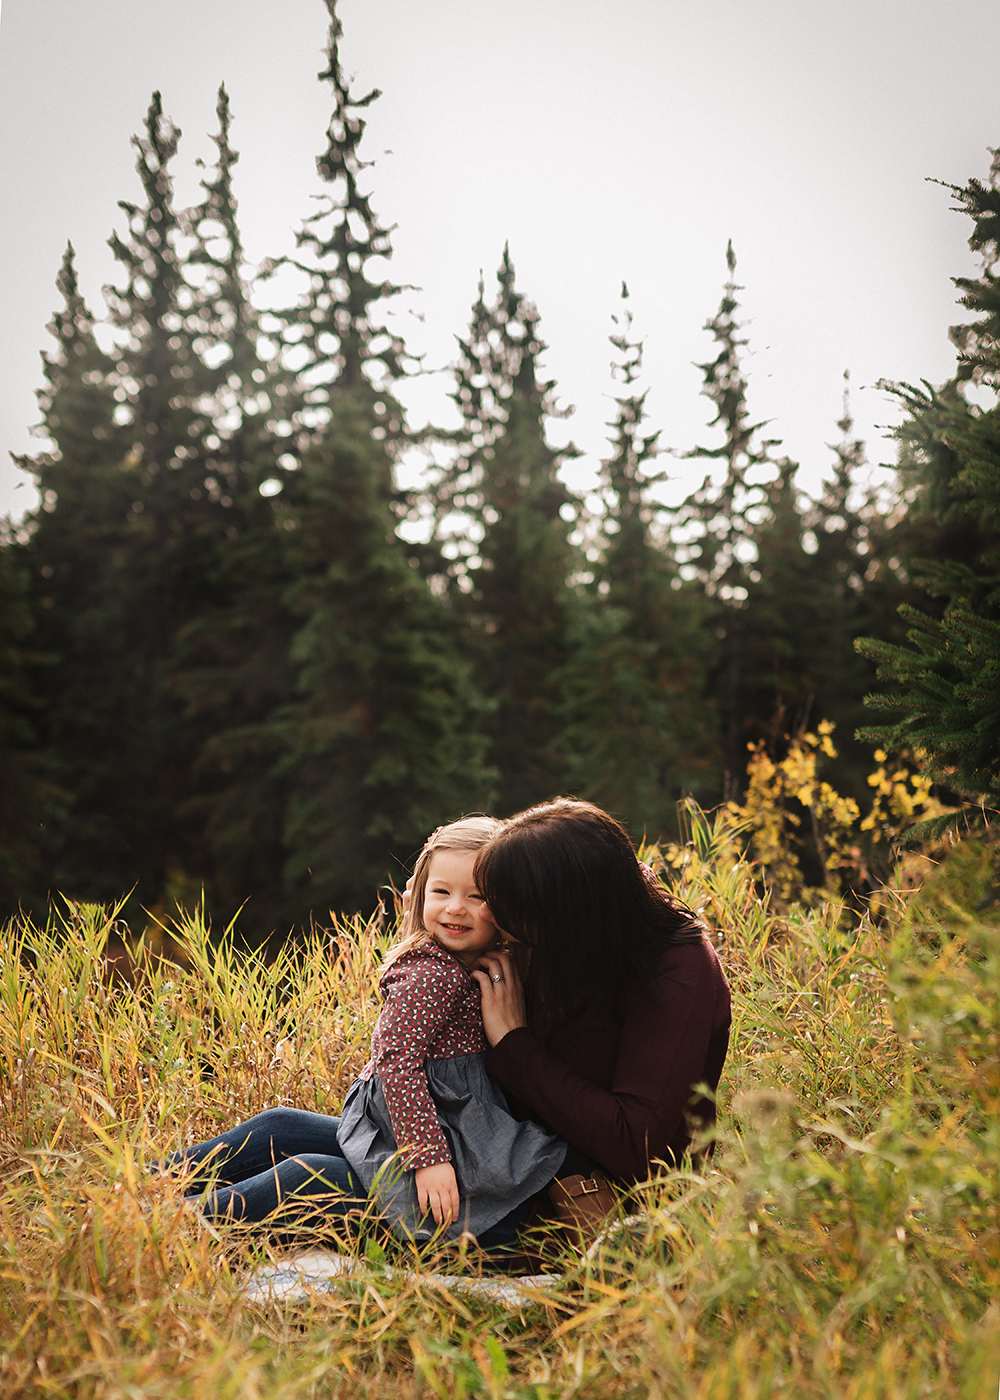 Edmonton Family Photographer_McRoberts Family Sneak Peek 6.jpg